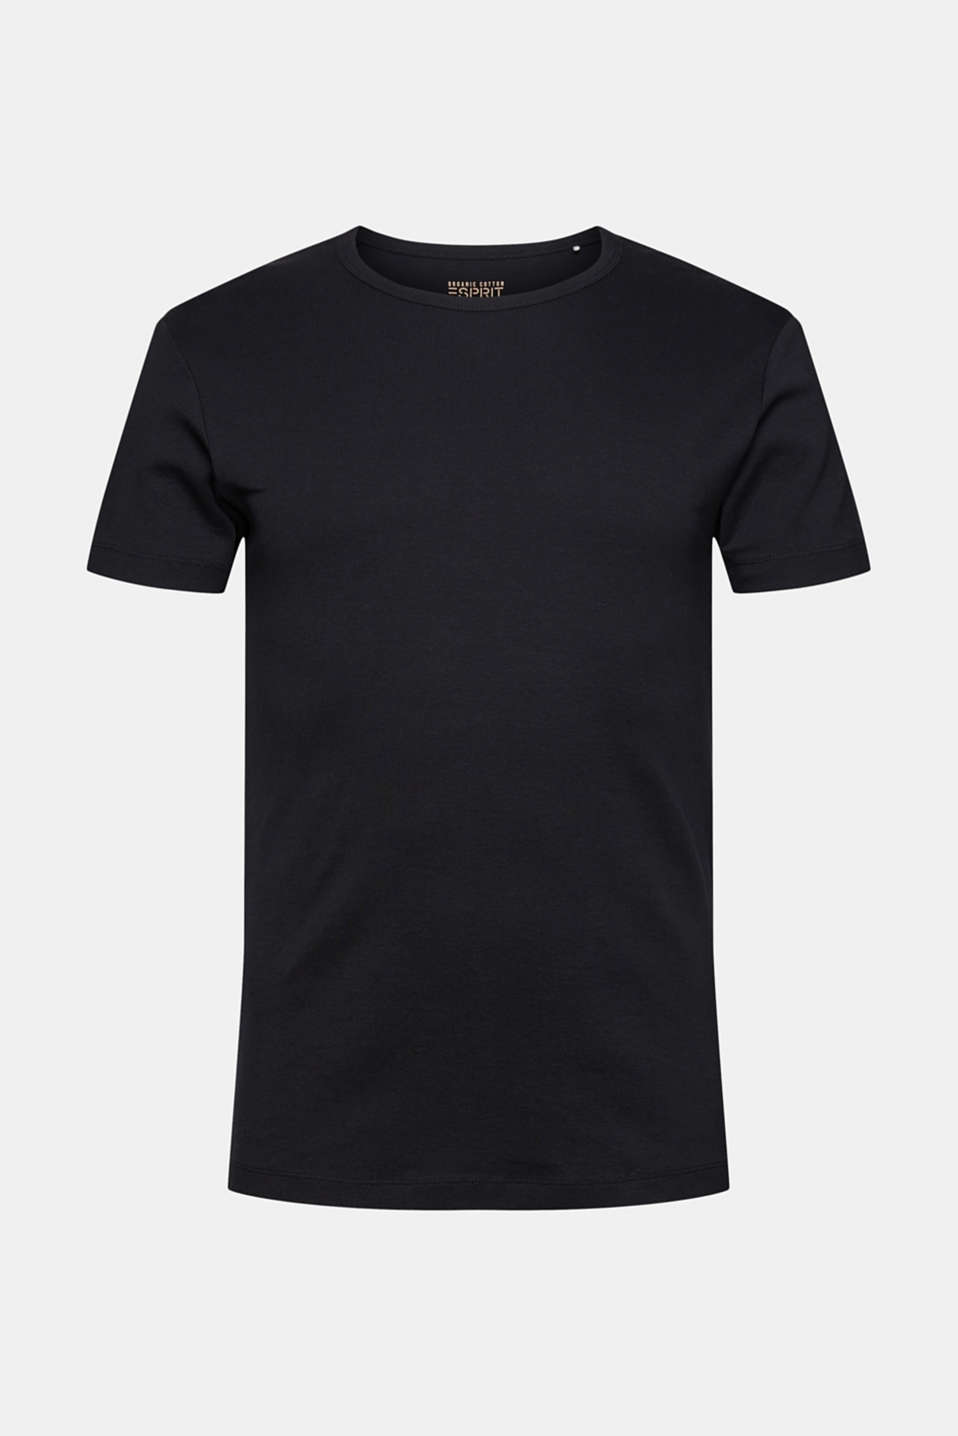 Ribbed jersey top made of 100% cotton, BLACK, detail image number 5